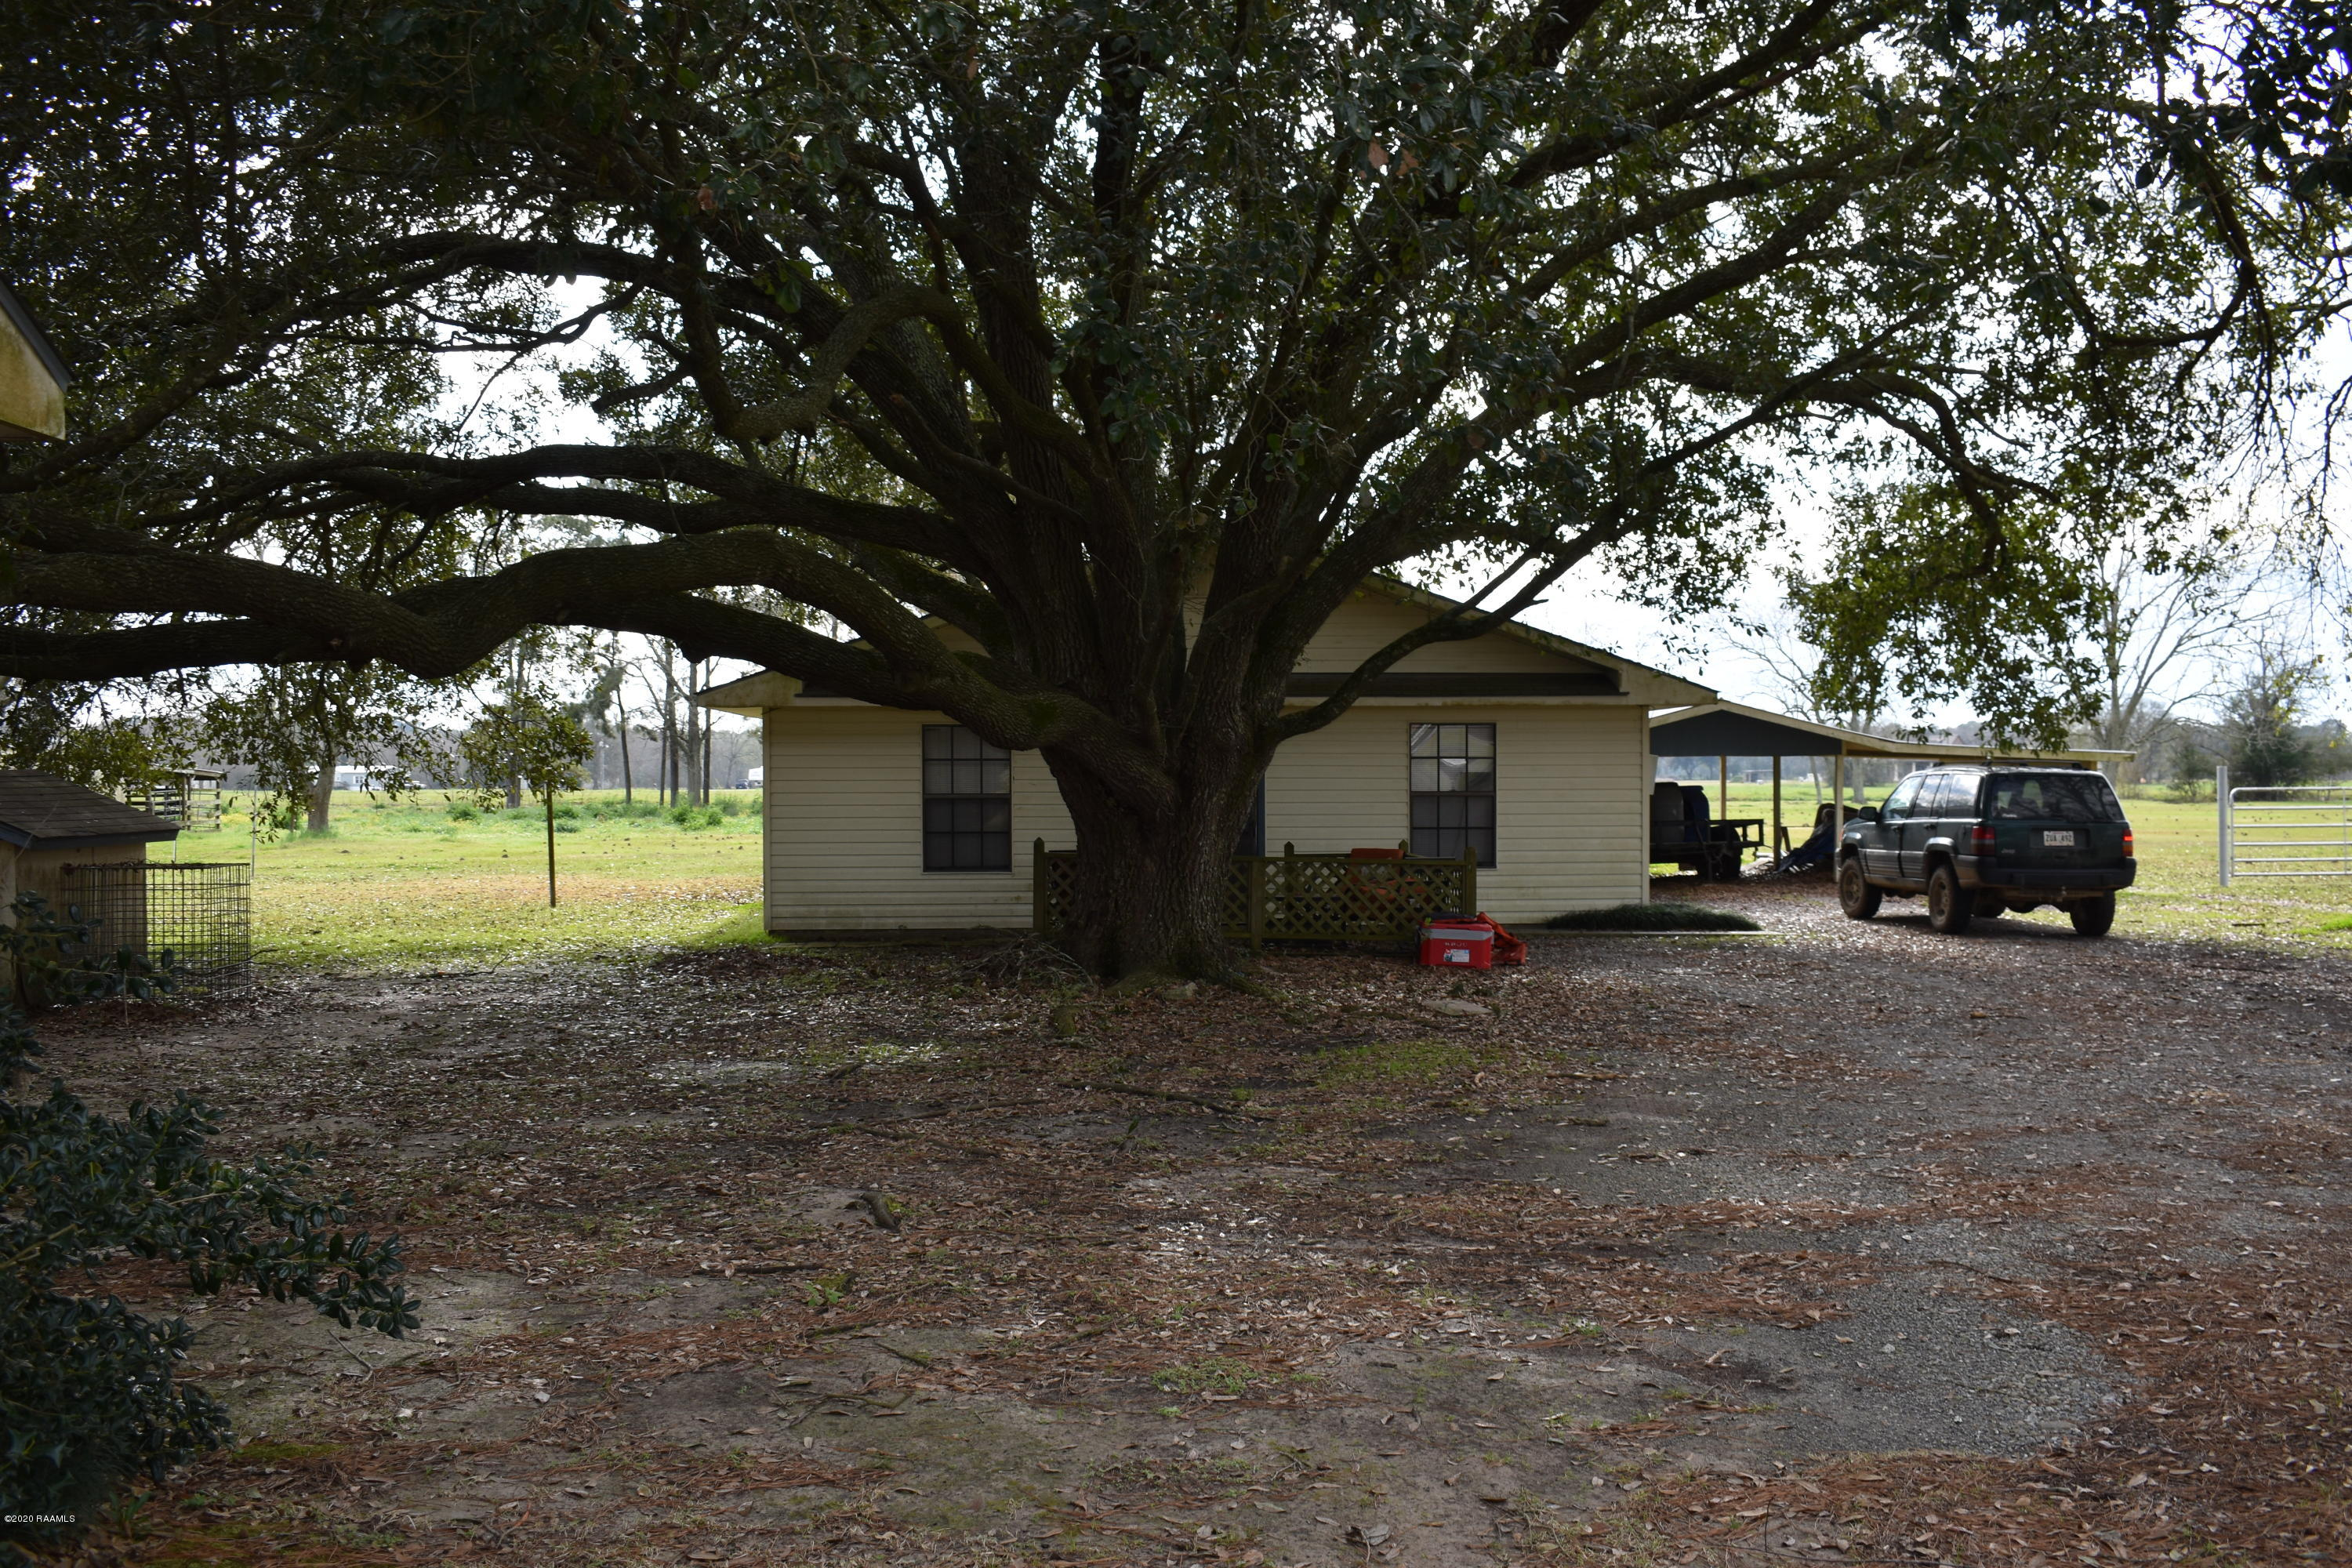 655 Saddle Drive, Eunice, LA 70535 Photo #18